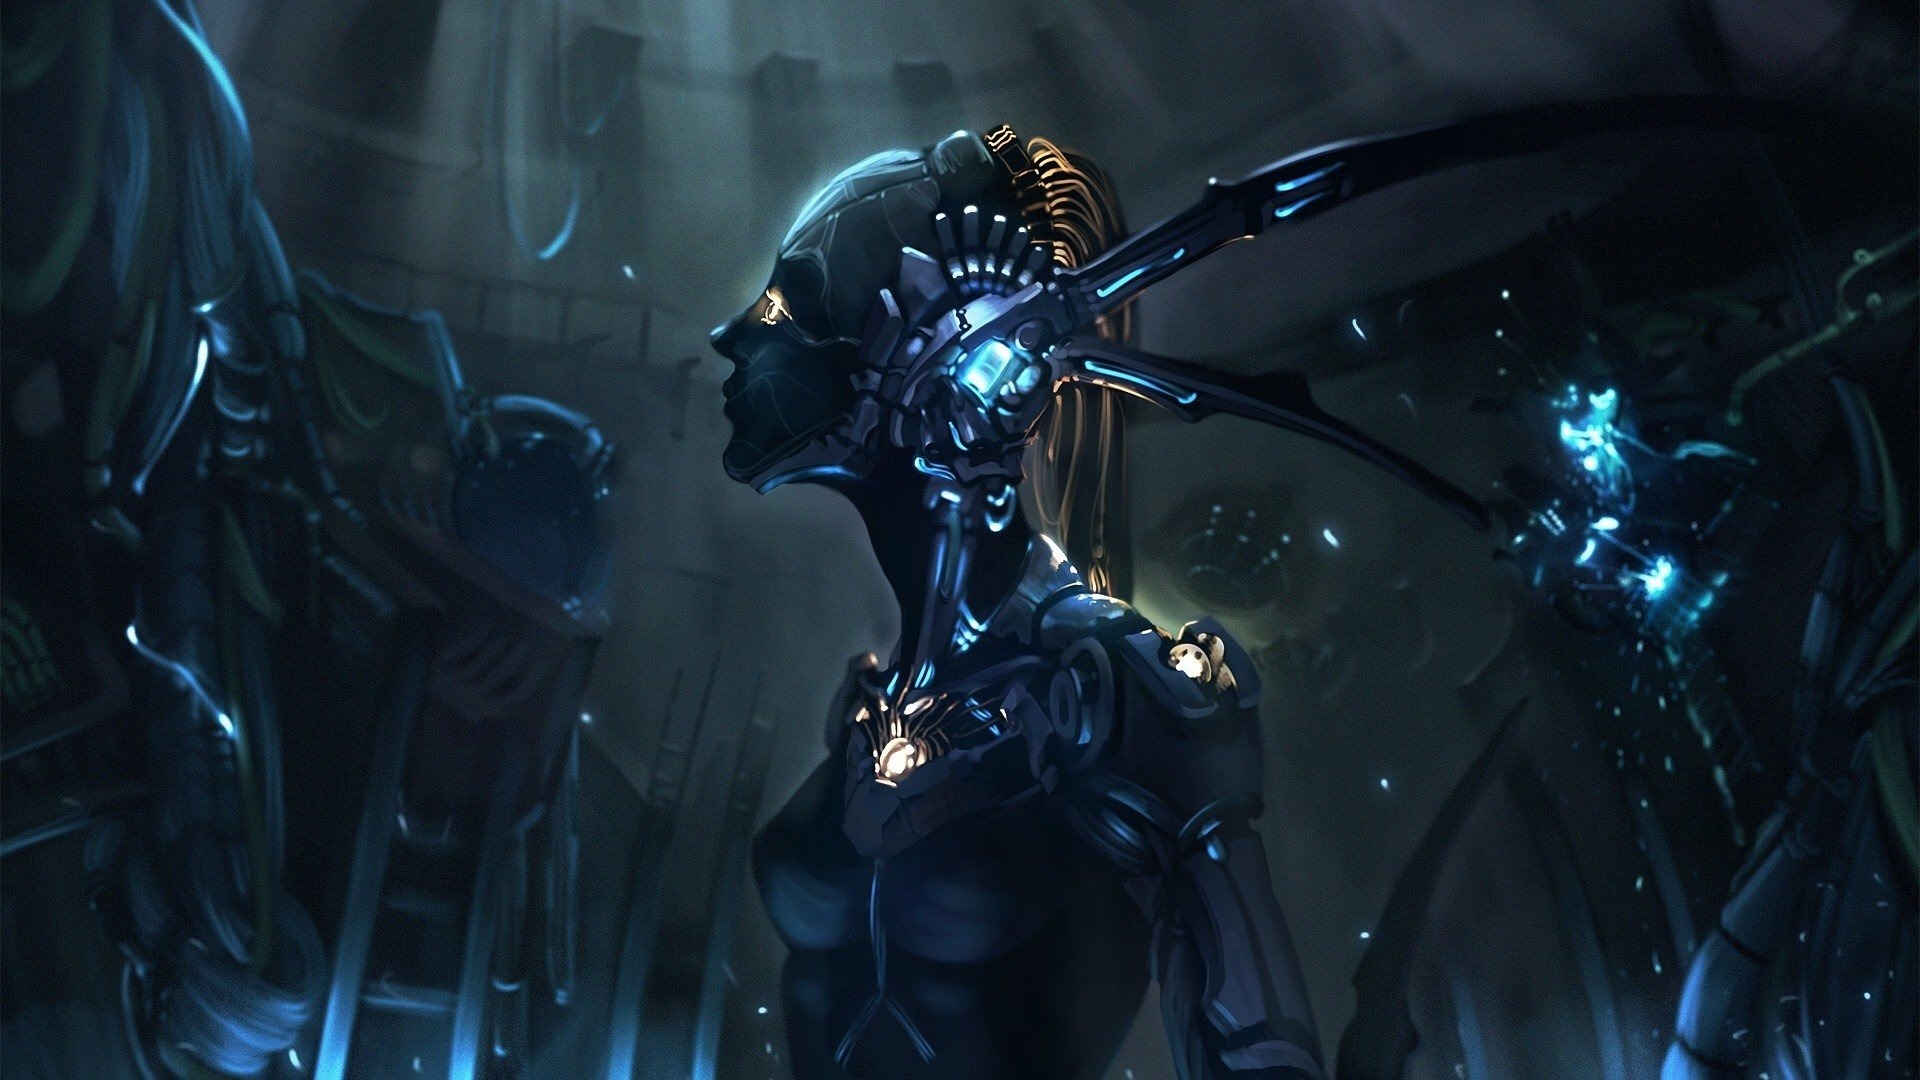 Best Motorcycle Armor >> machine, Futuristic, Robot HD Wallpapers / Desktop and ...